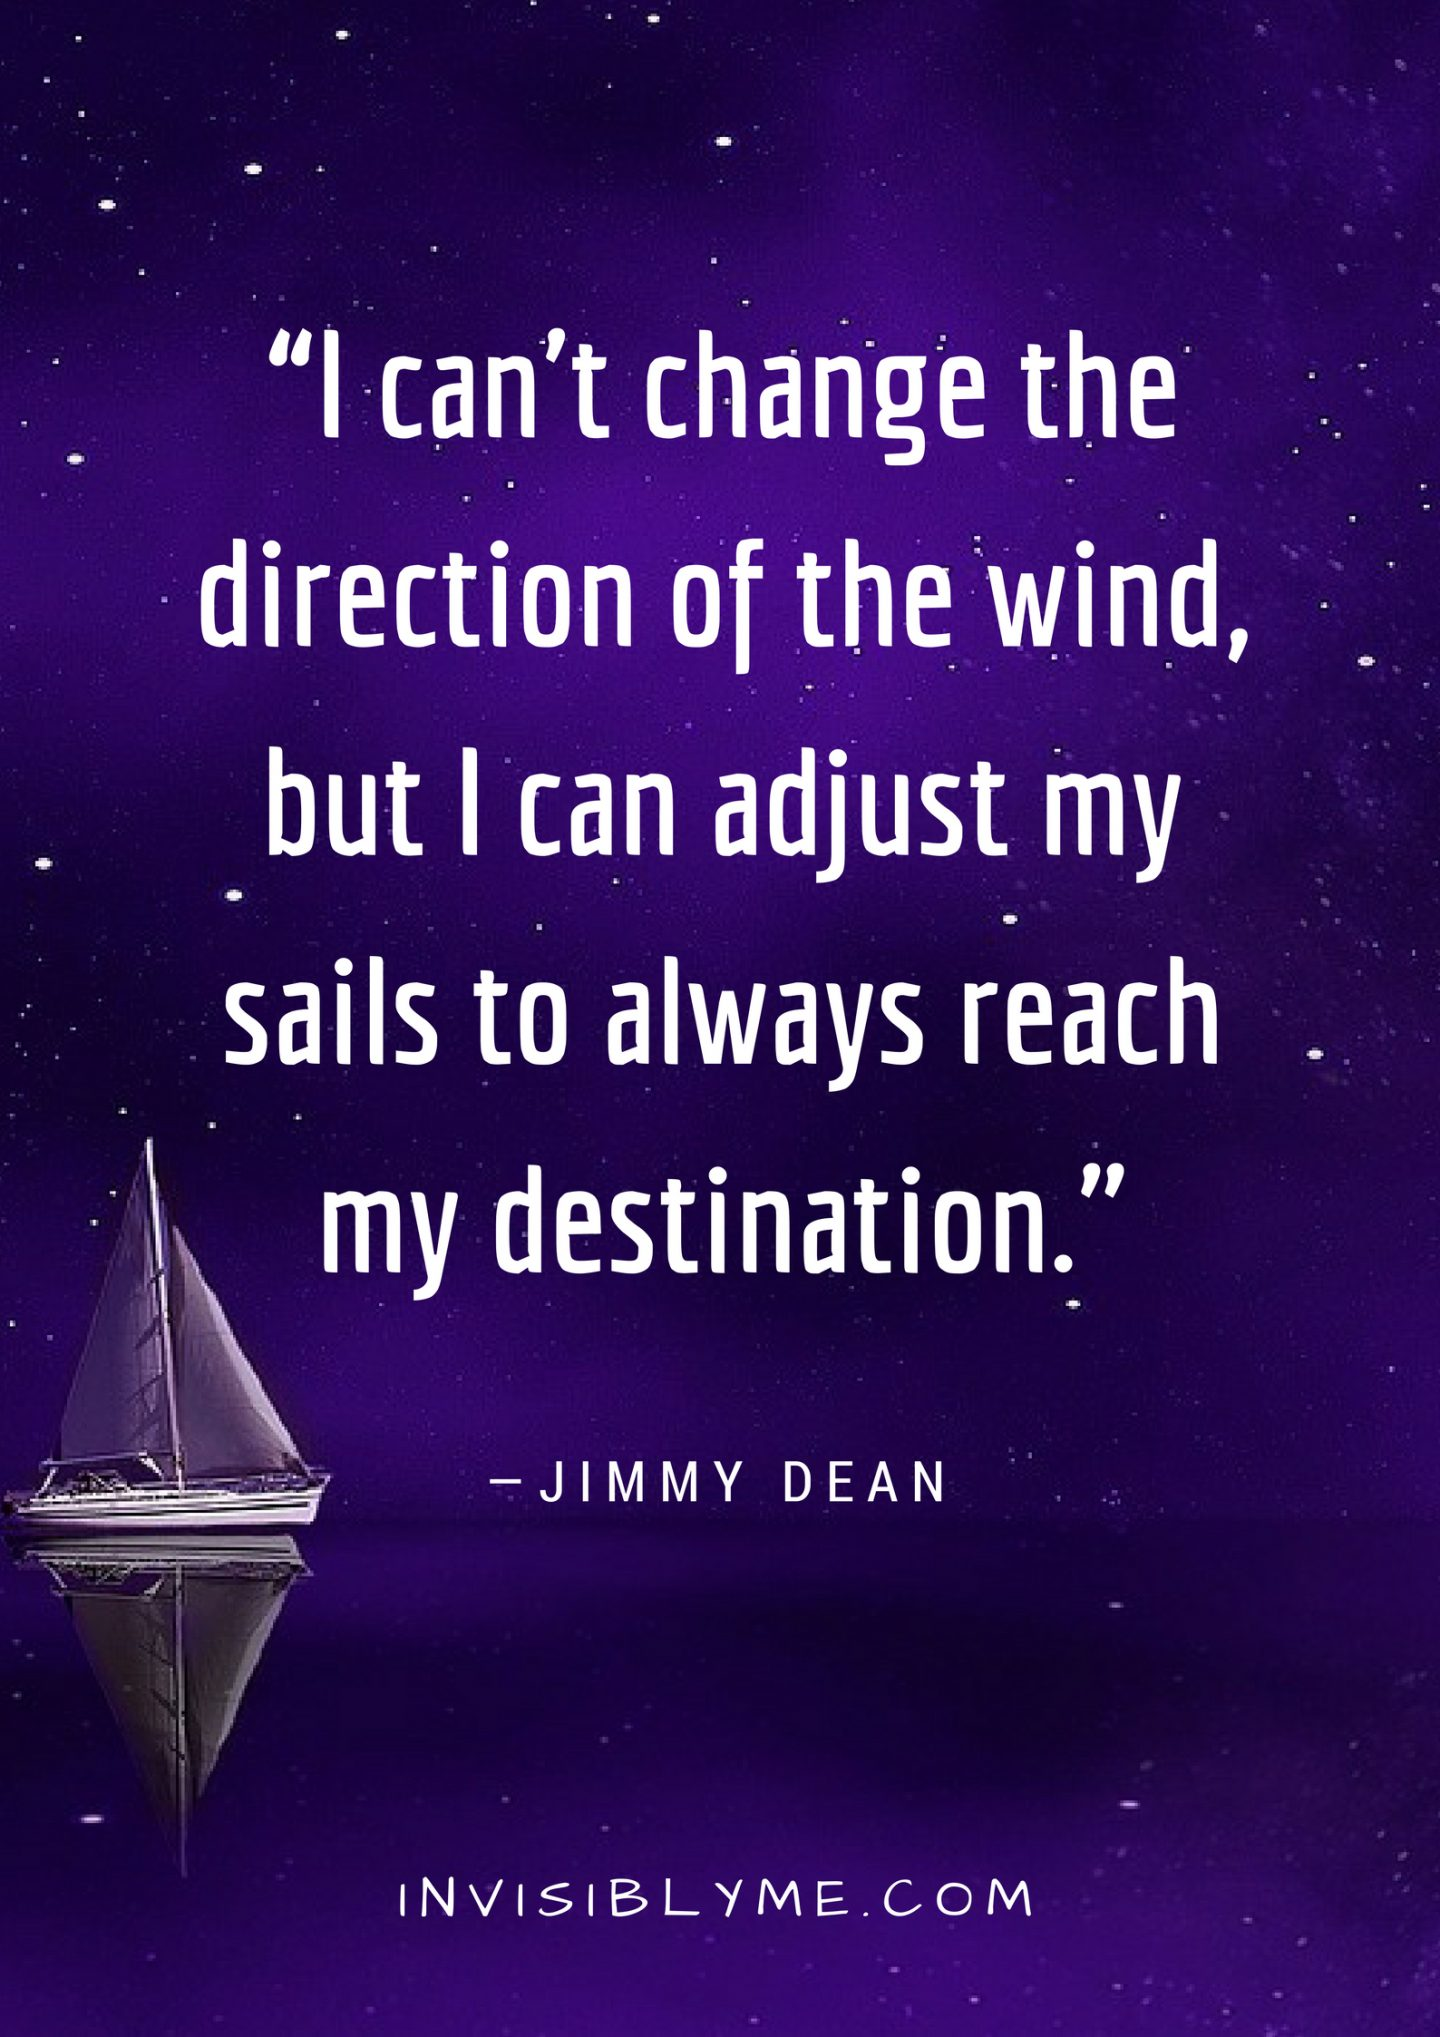 Monday Motivation : Adjust Your Sails